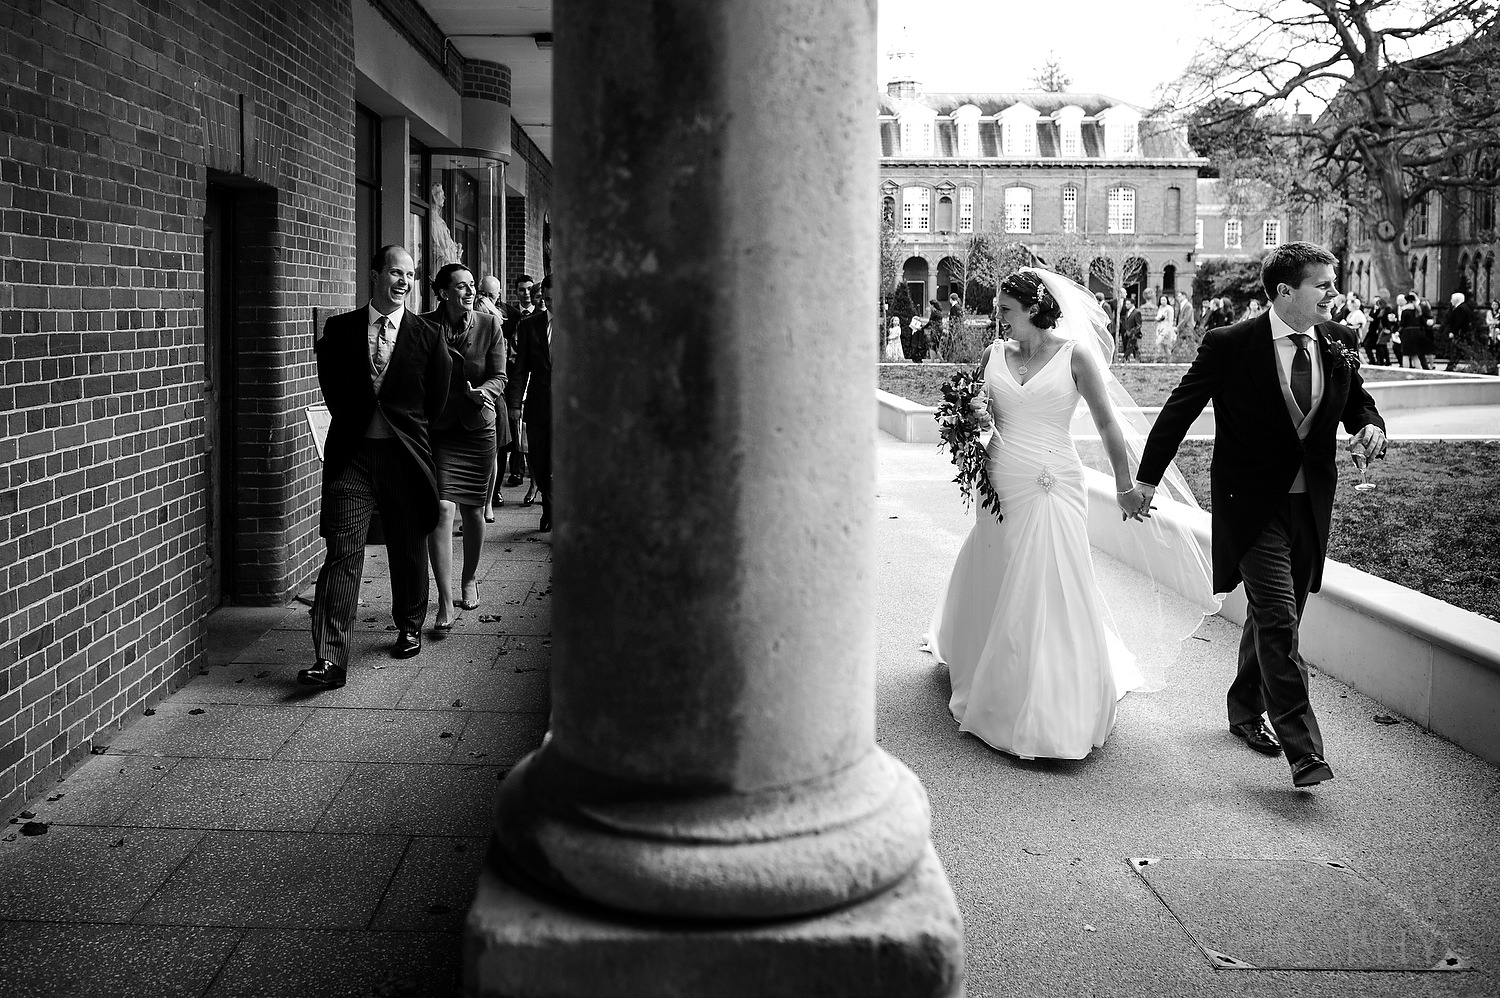 Leading wedding guests to the Great School